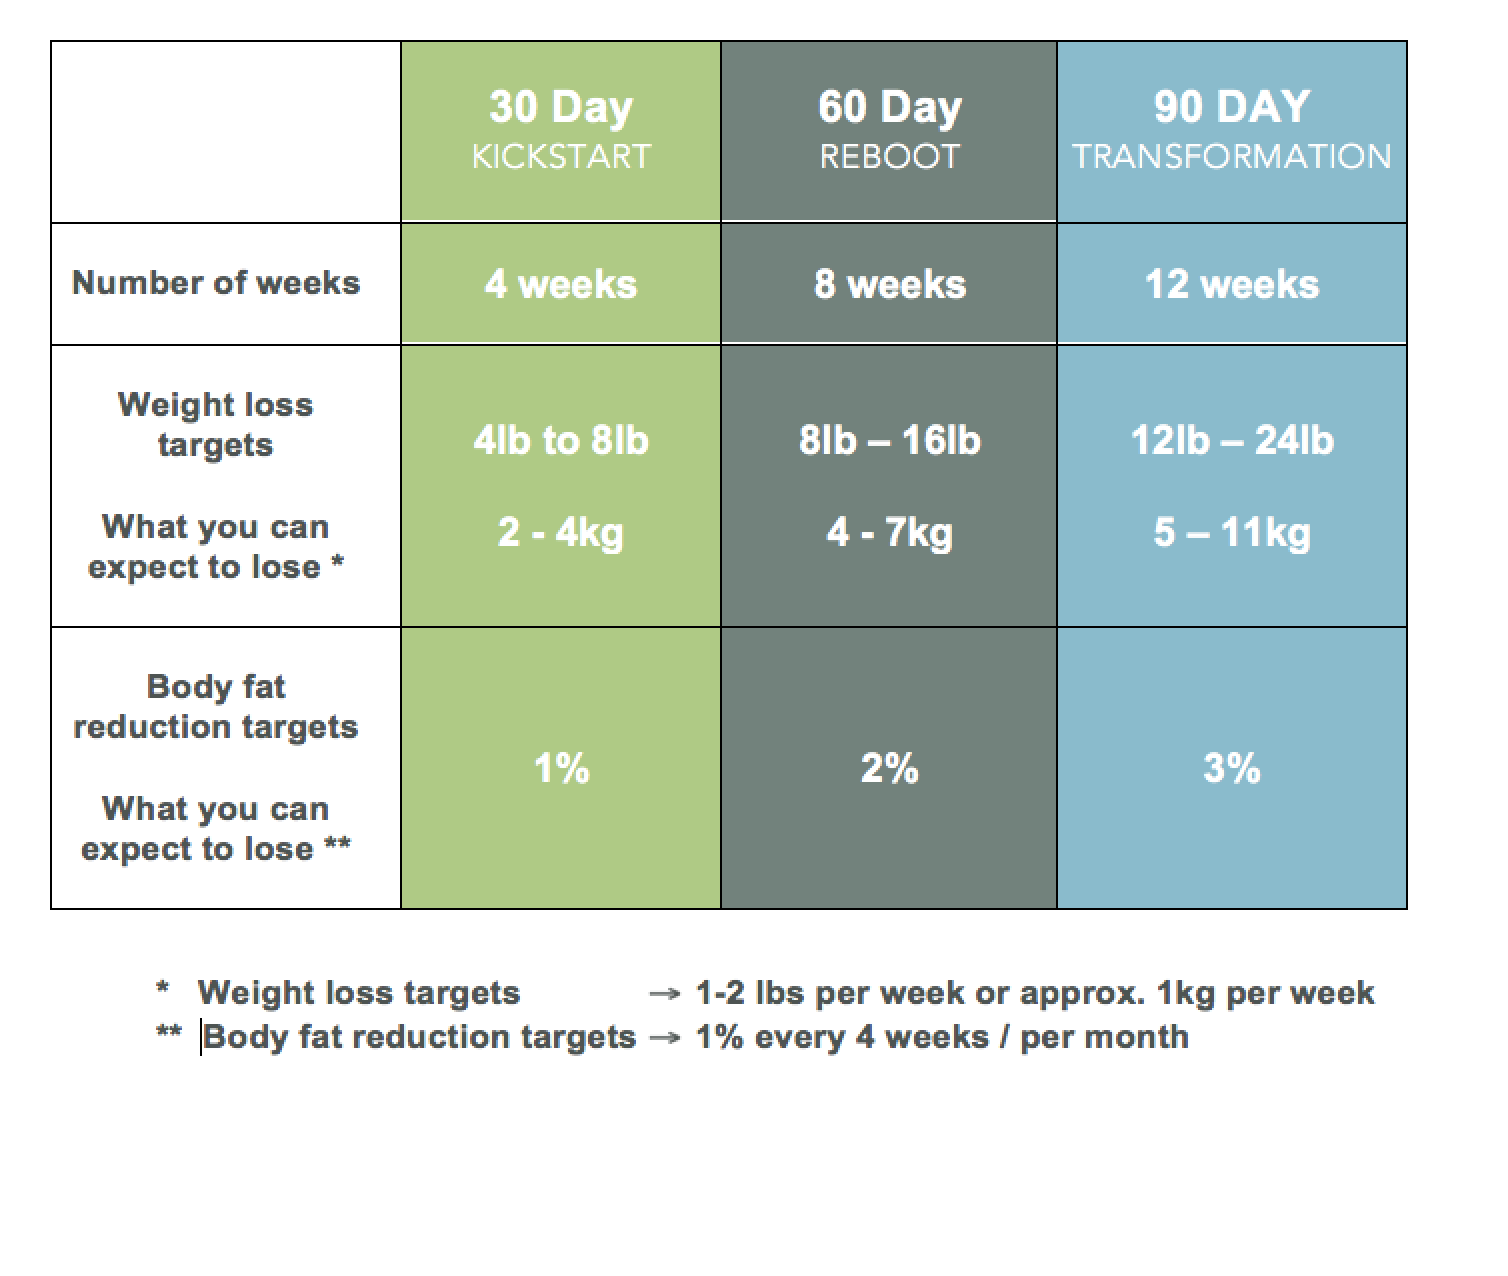 Weight & fat loss targets Oct 18.png